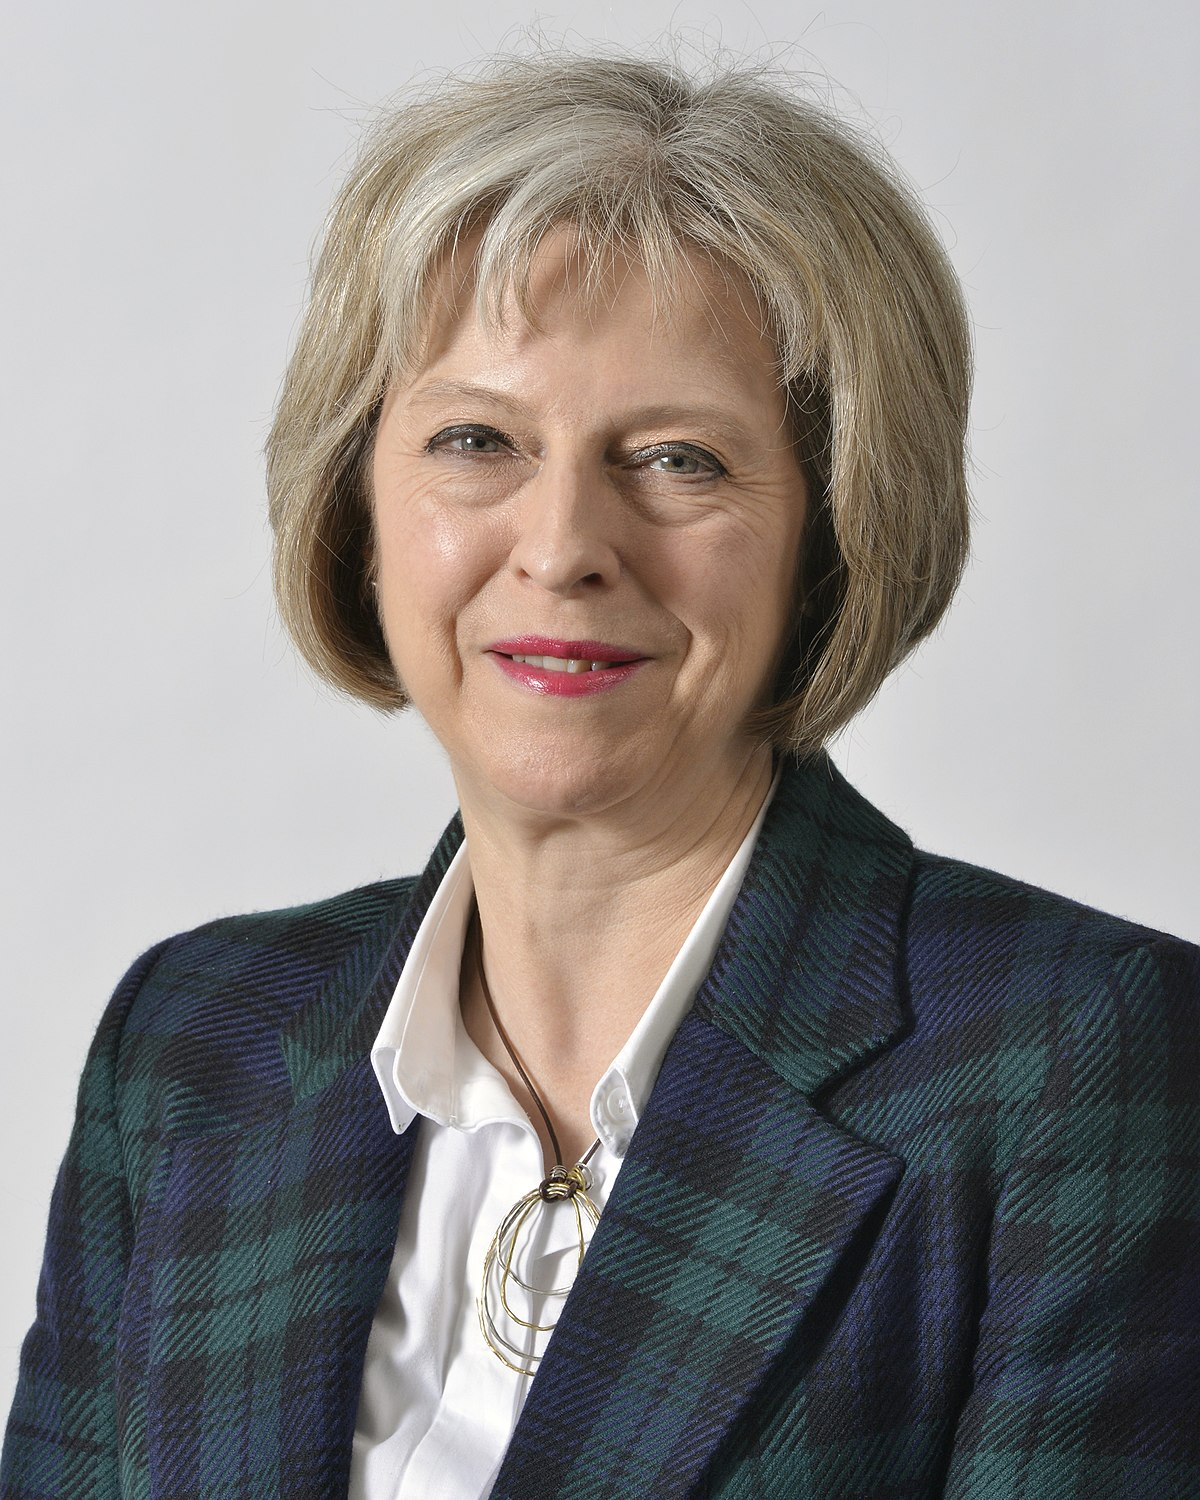 Who is the Prime Minister now in the UK